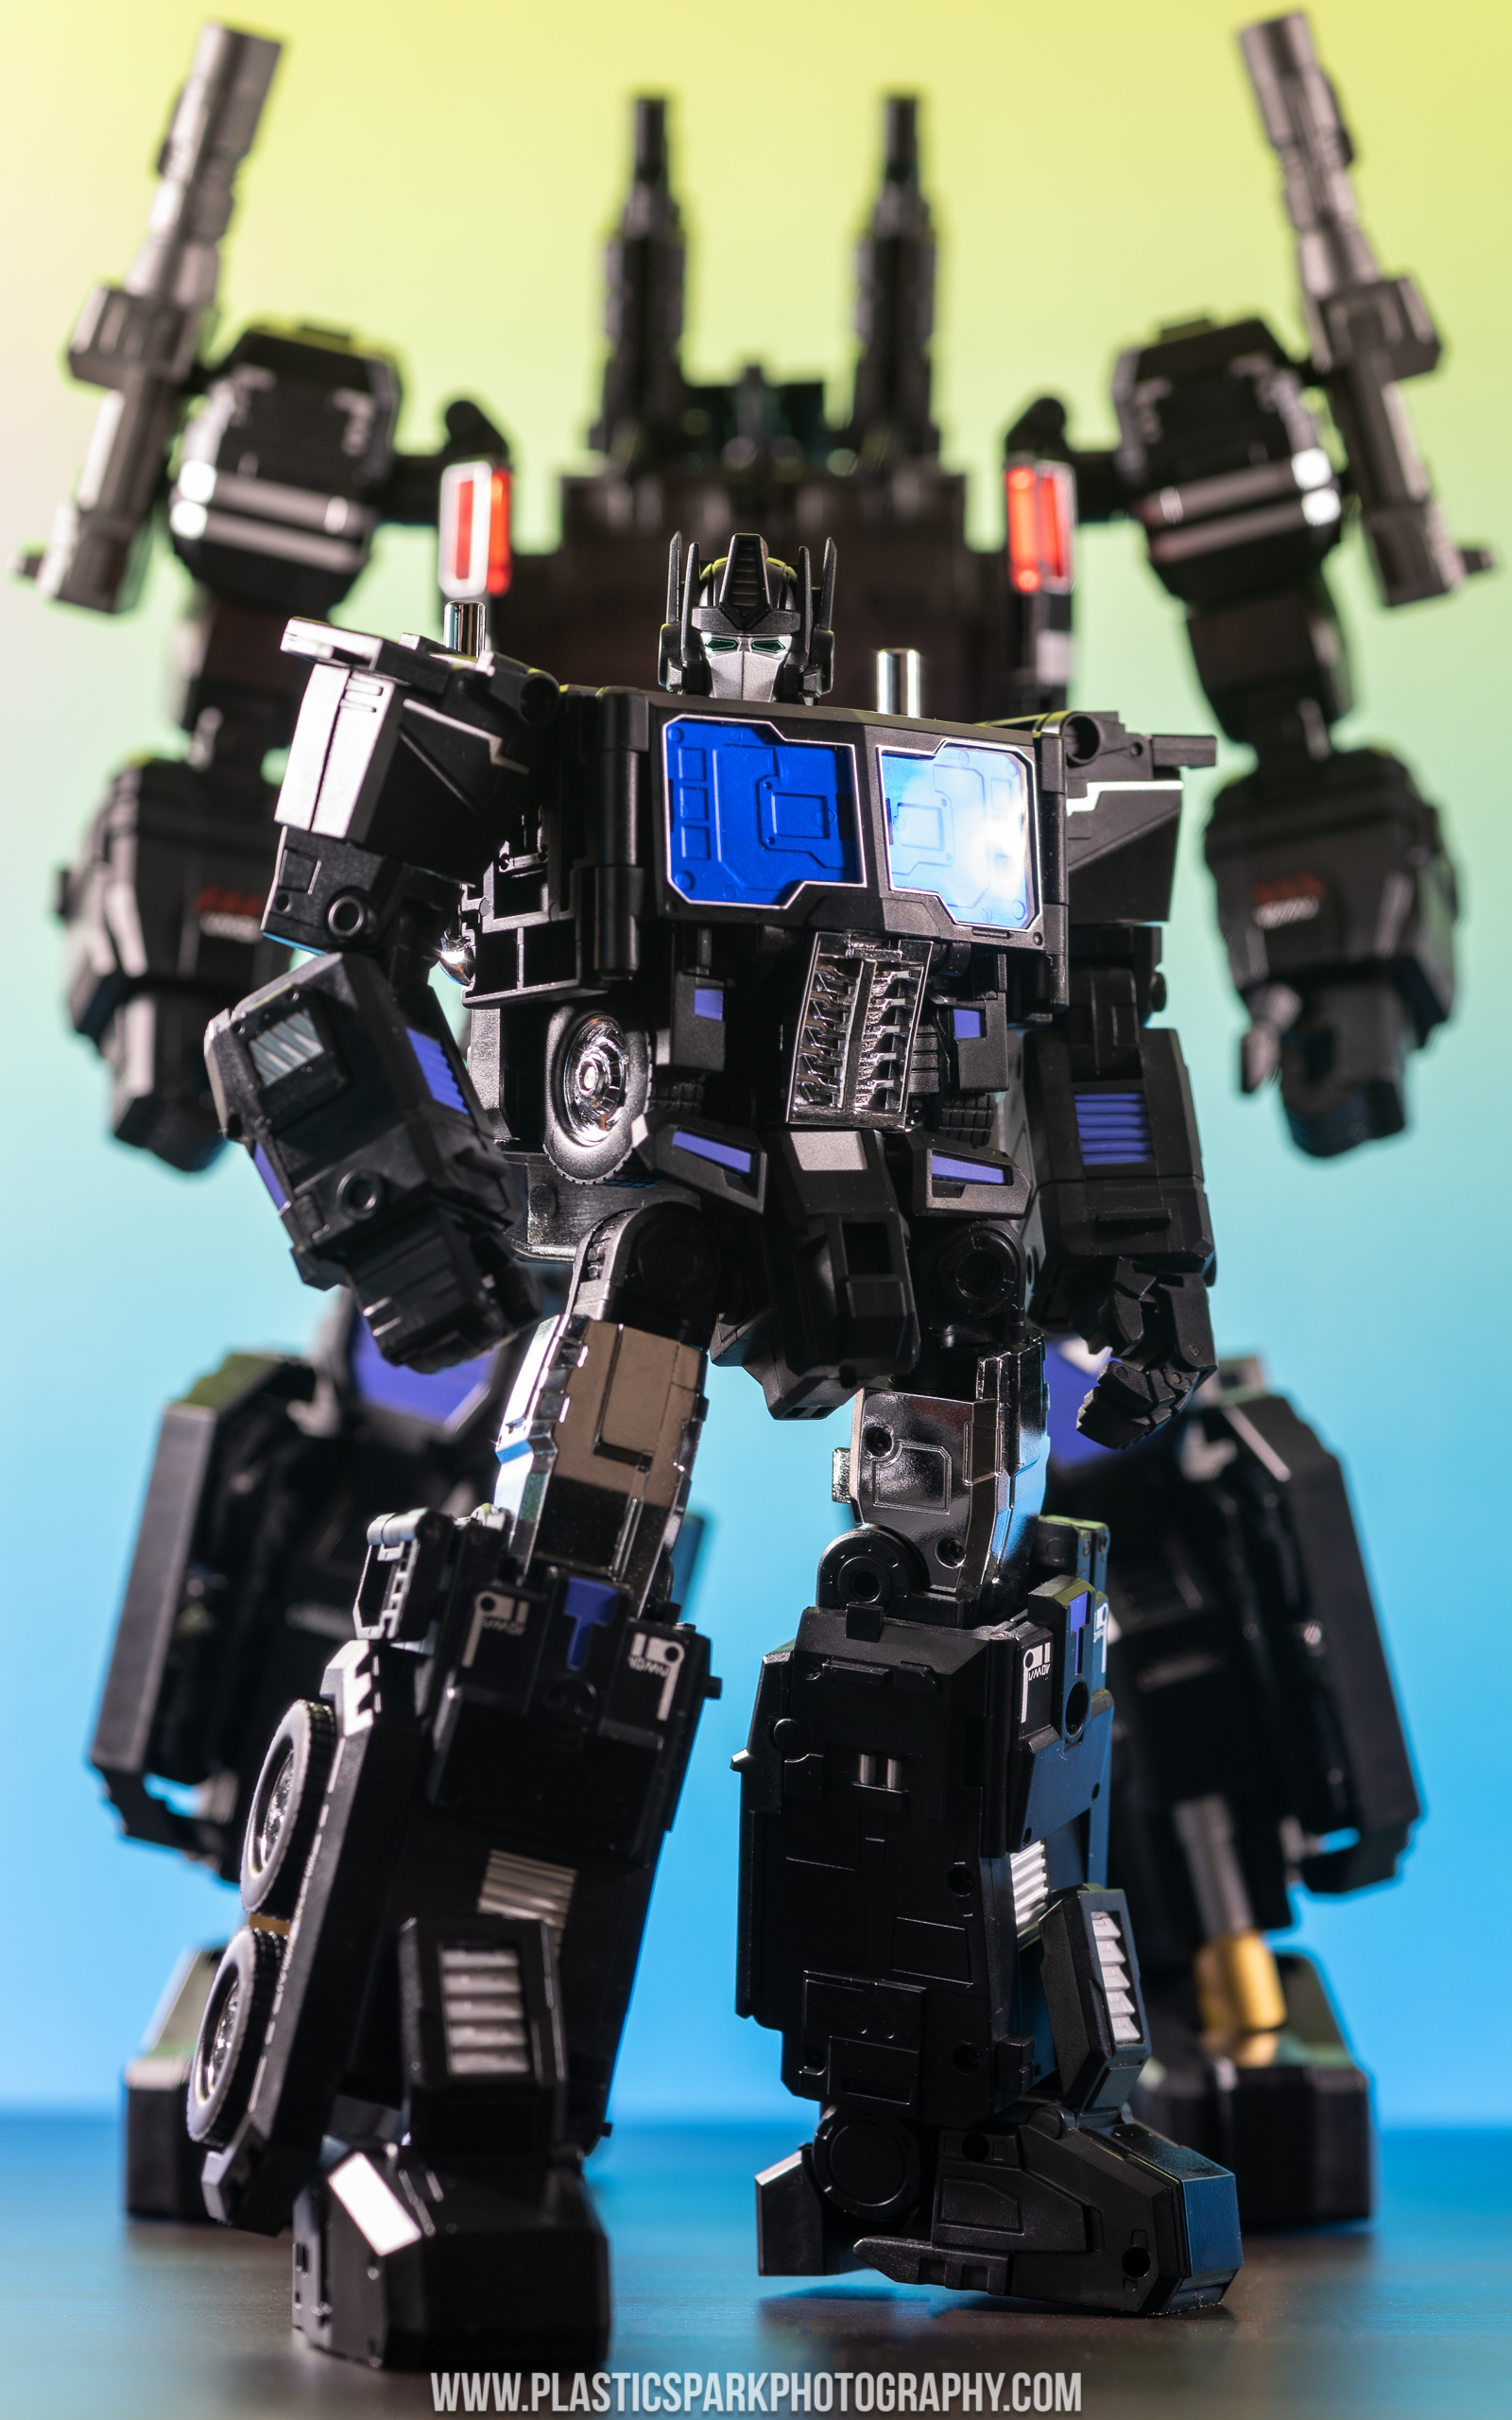 Fans Hobby MB-06A Black Power Baser Preview (6 of 10).jpg